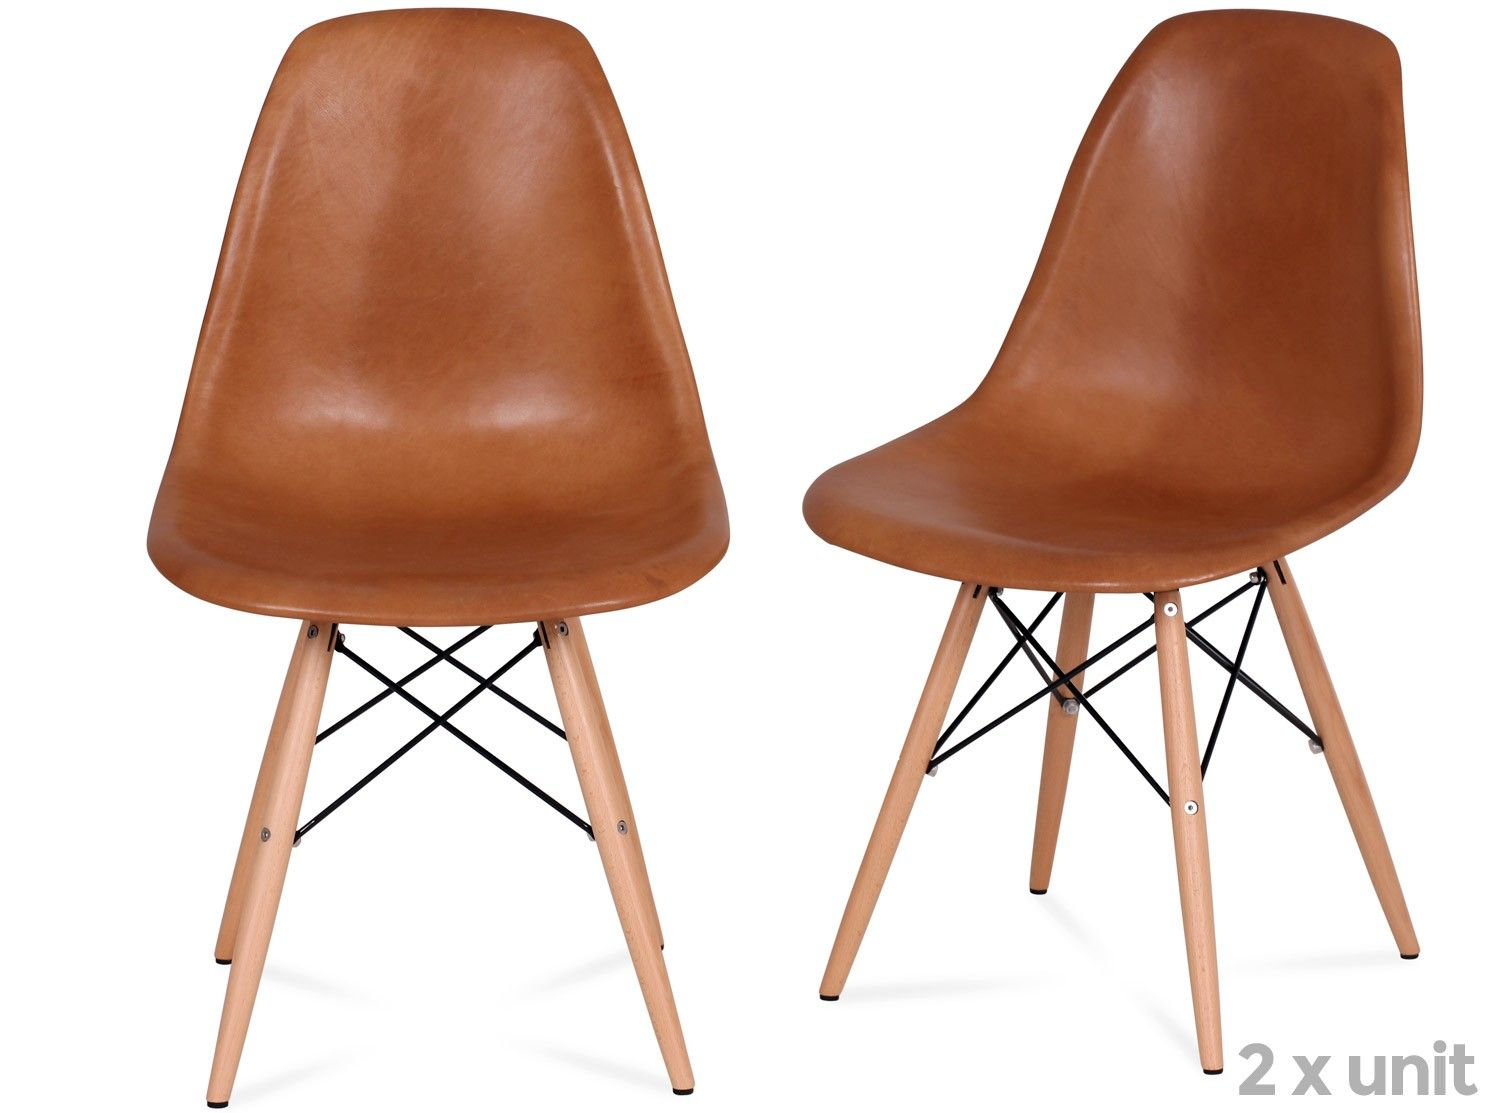 eames leather chair dining indoor rocking dsw platinum replica x2 239 sale furniture pinterest chairs and